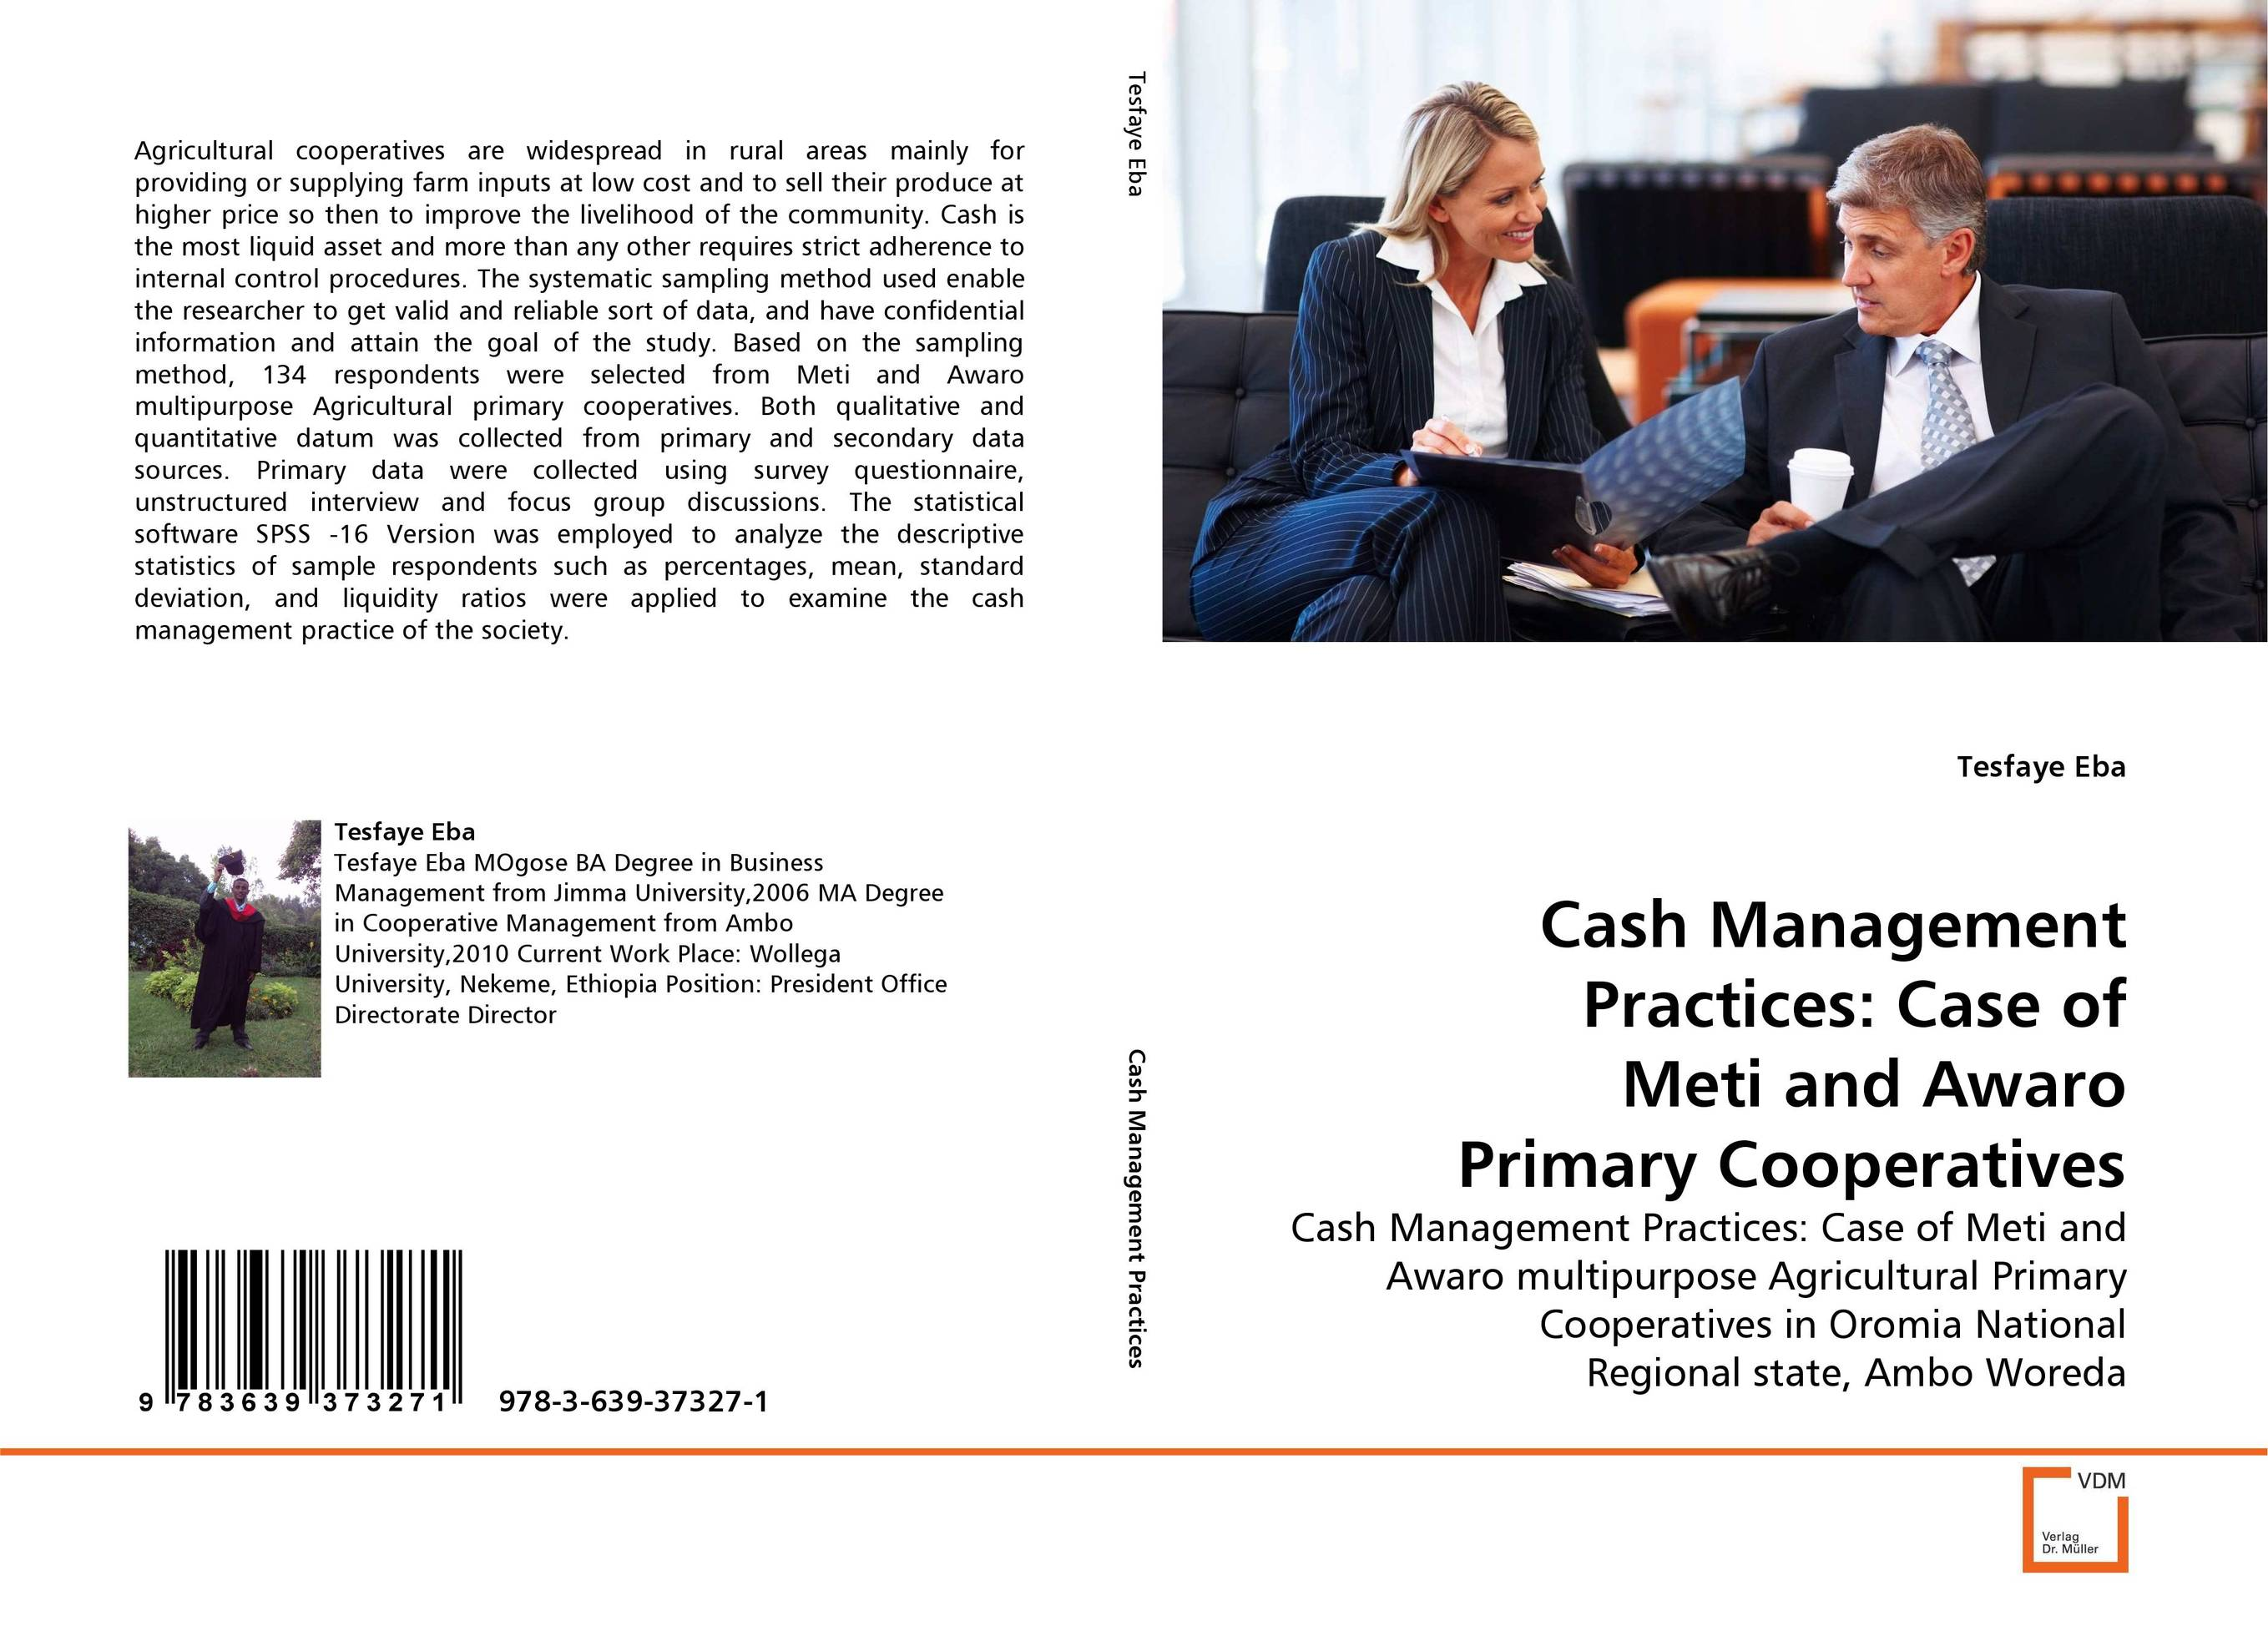 Cash Management Practices: Case of Meti and Awaro Primary Cooperatives